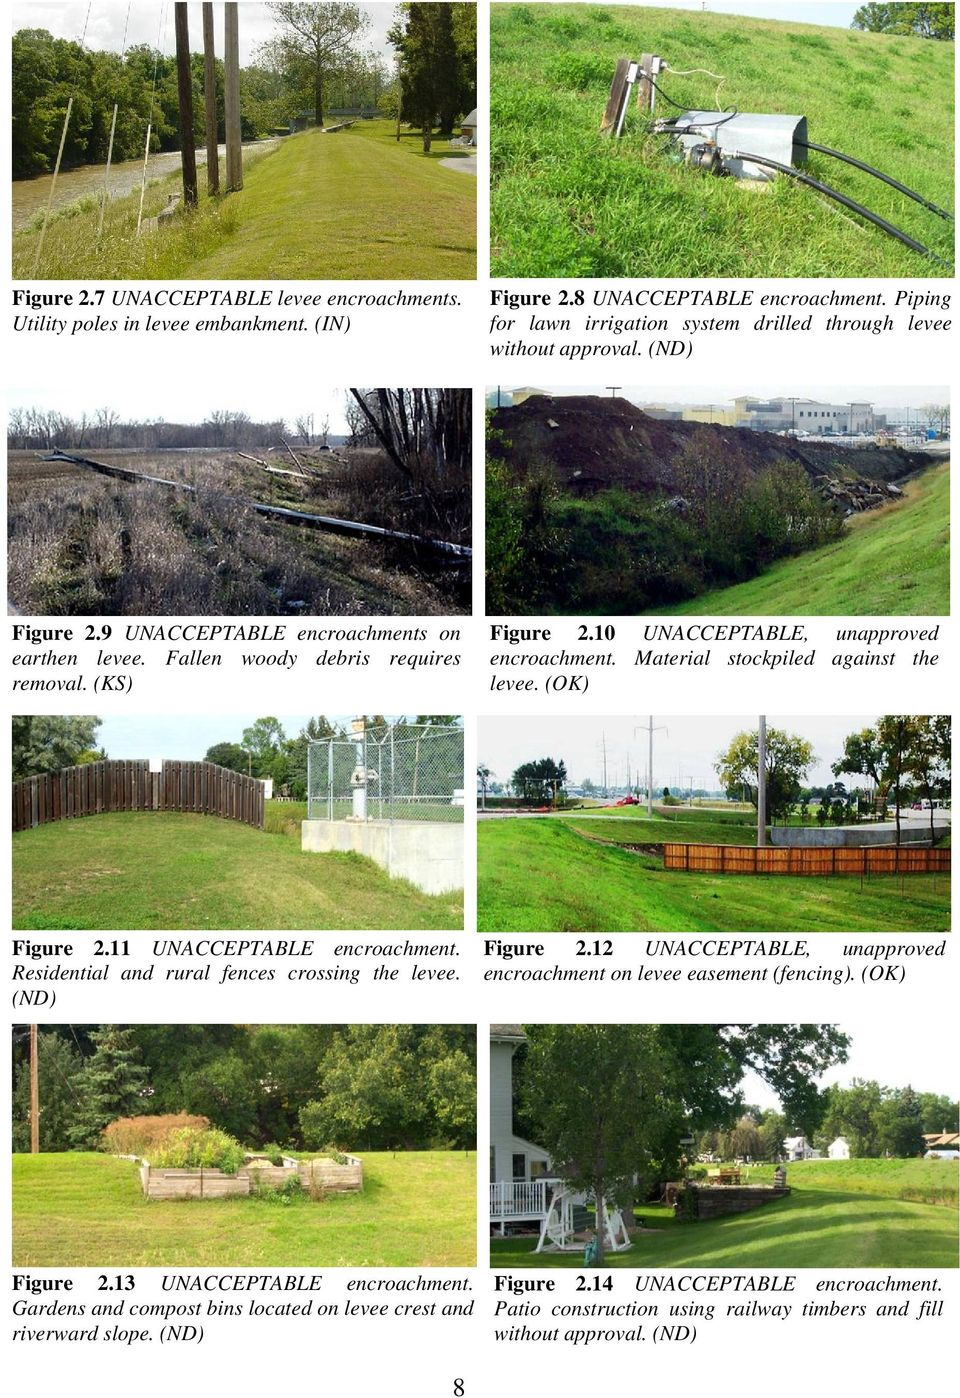 (OK) Figure 2.11 UNACCEPTABLE encroachment. Residential and rural fences crossing the levee. (ND) Figure 2.12 UNACCEPTABLE, unapproved encroachment on levee easement (fencing). (OK) Figure 2.